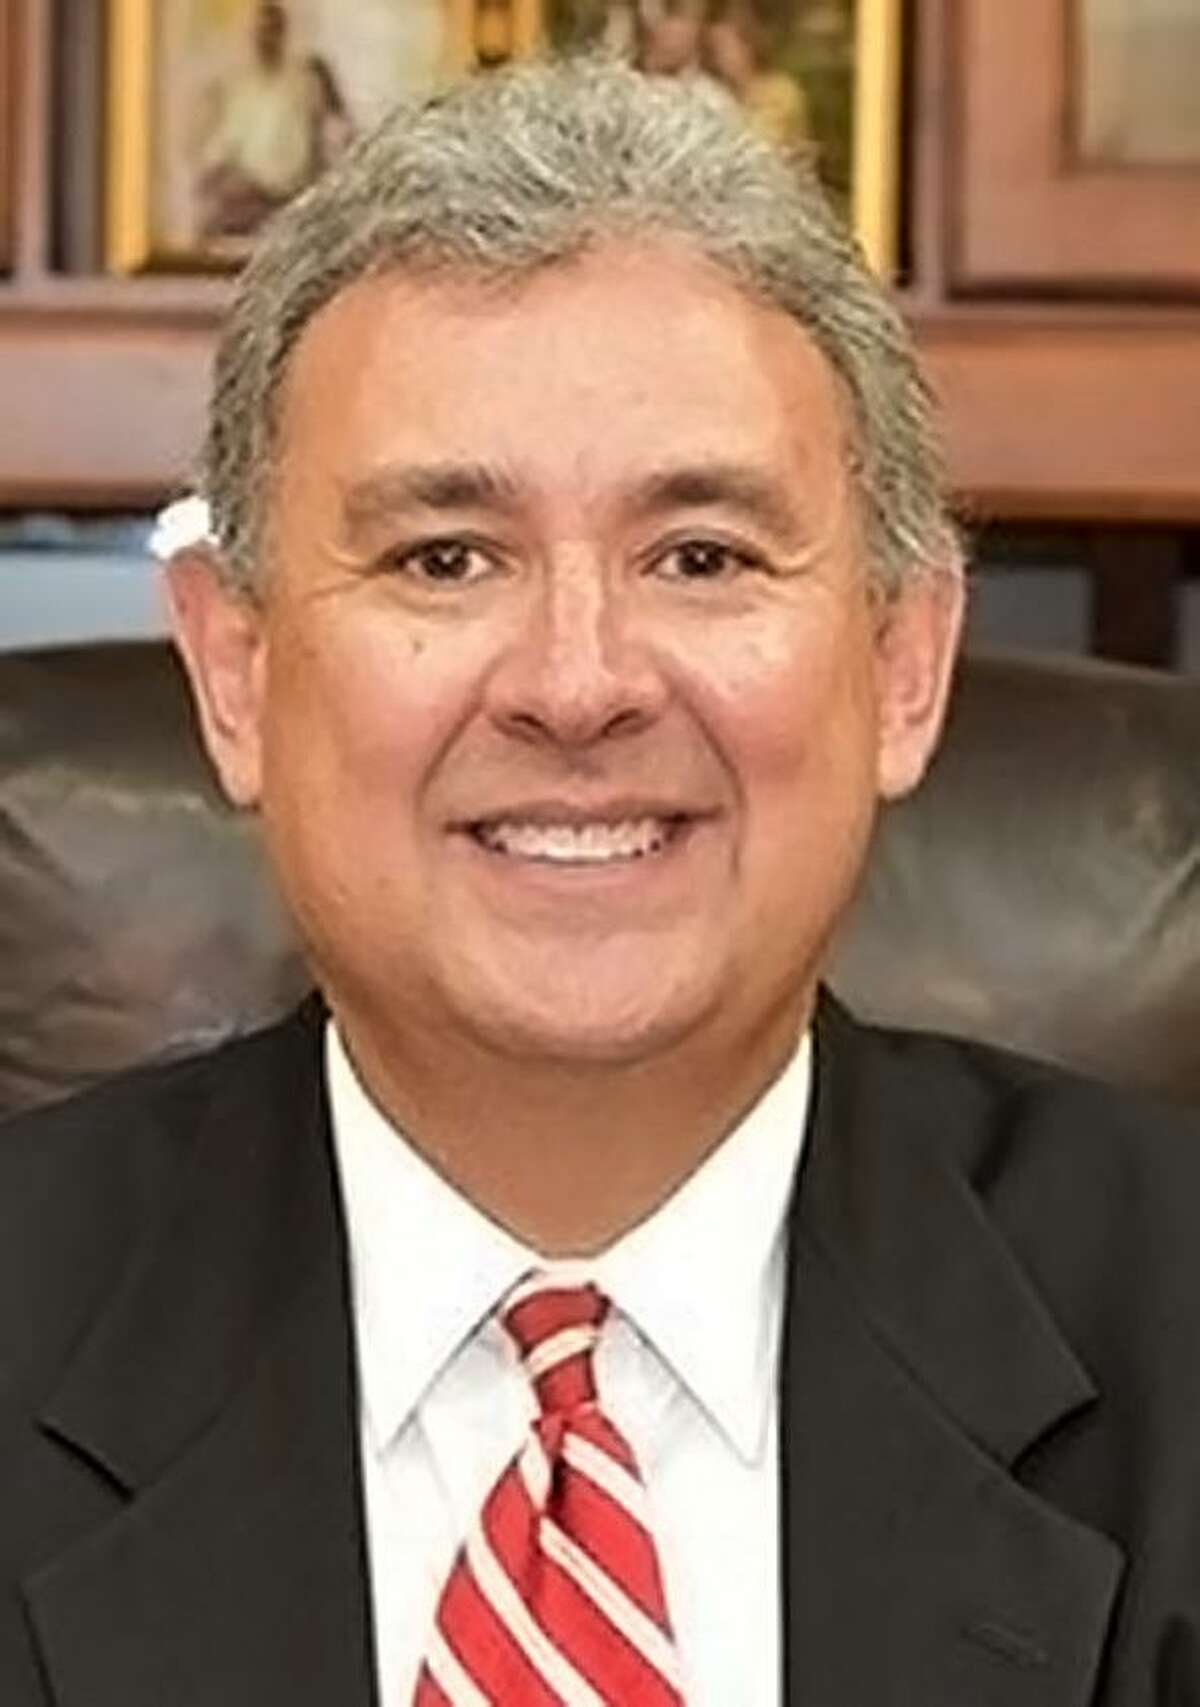 Joe Gonzales, candidate for Bexar County District Attorney.